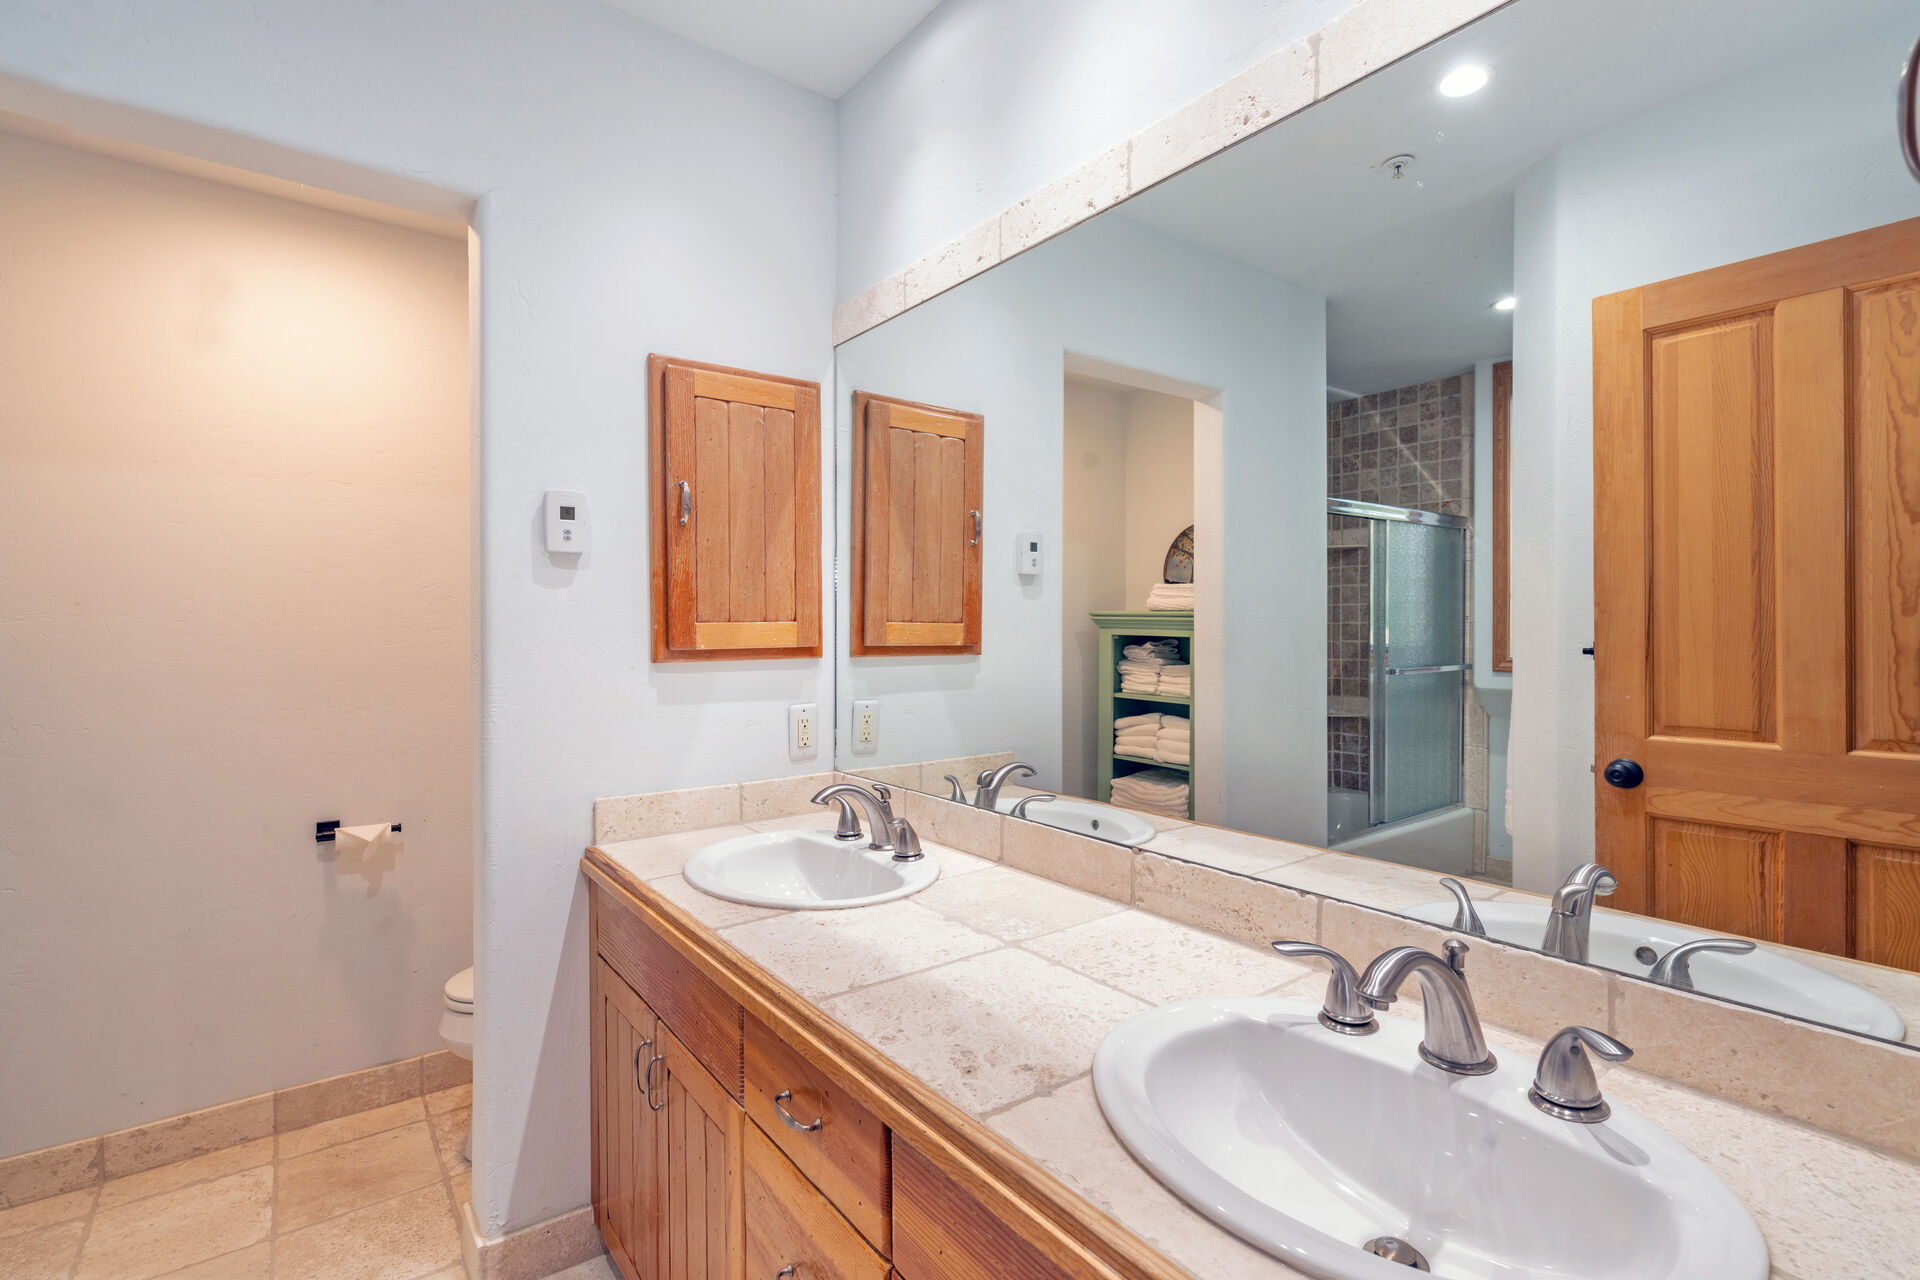 Bathroom with tile dual vanity counter